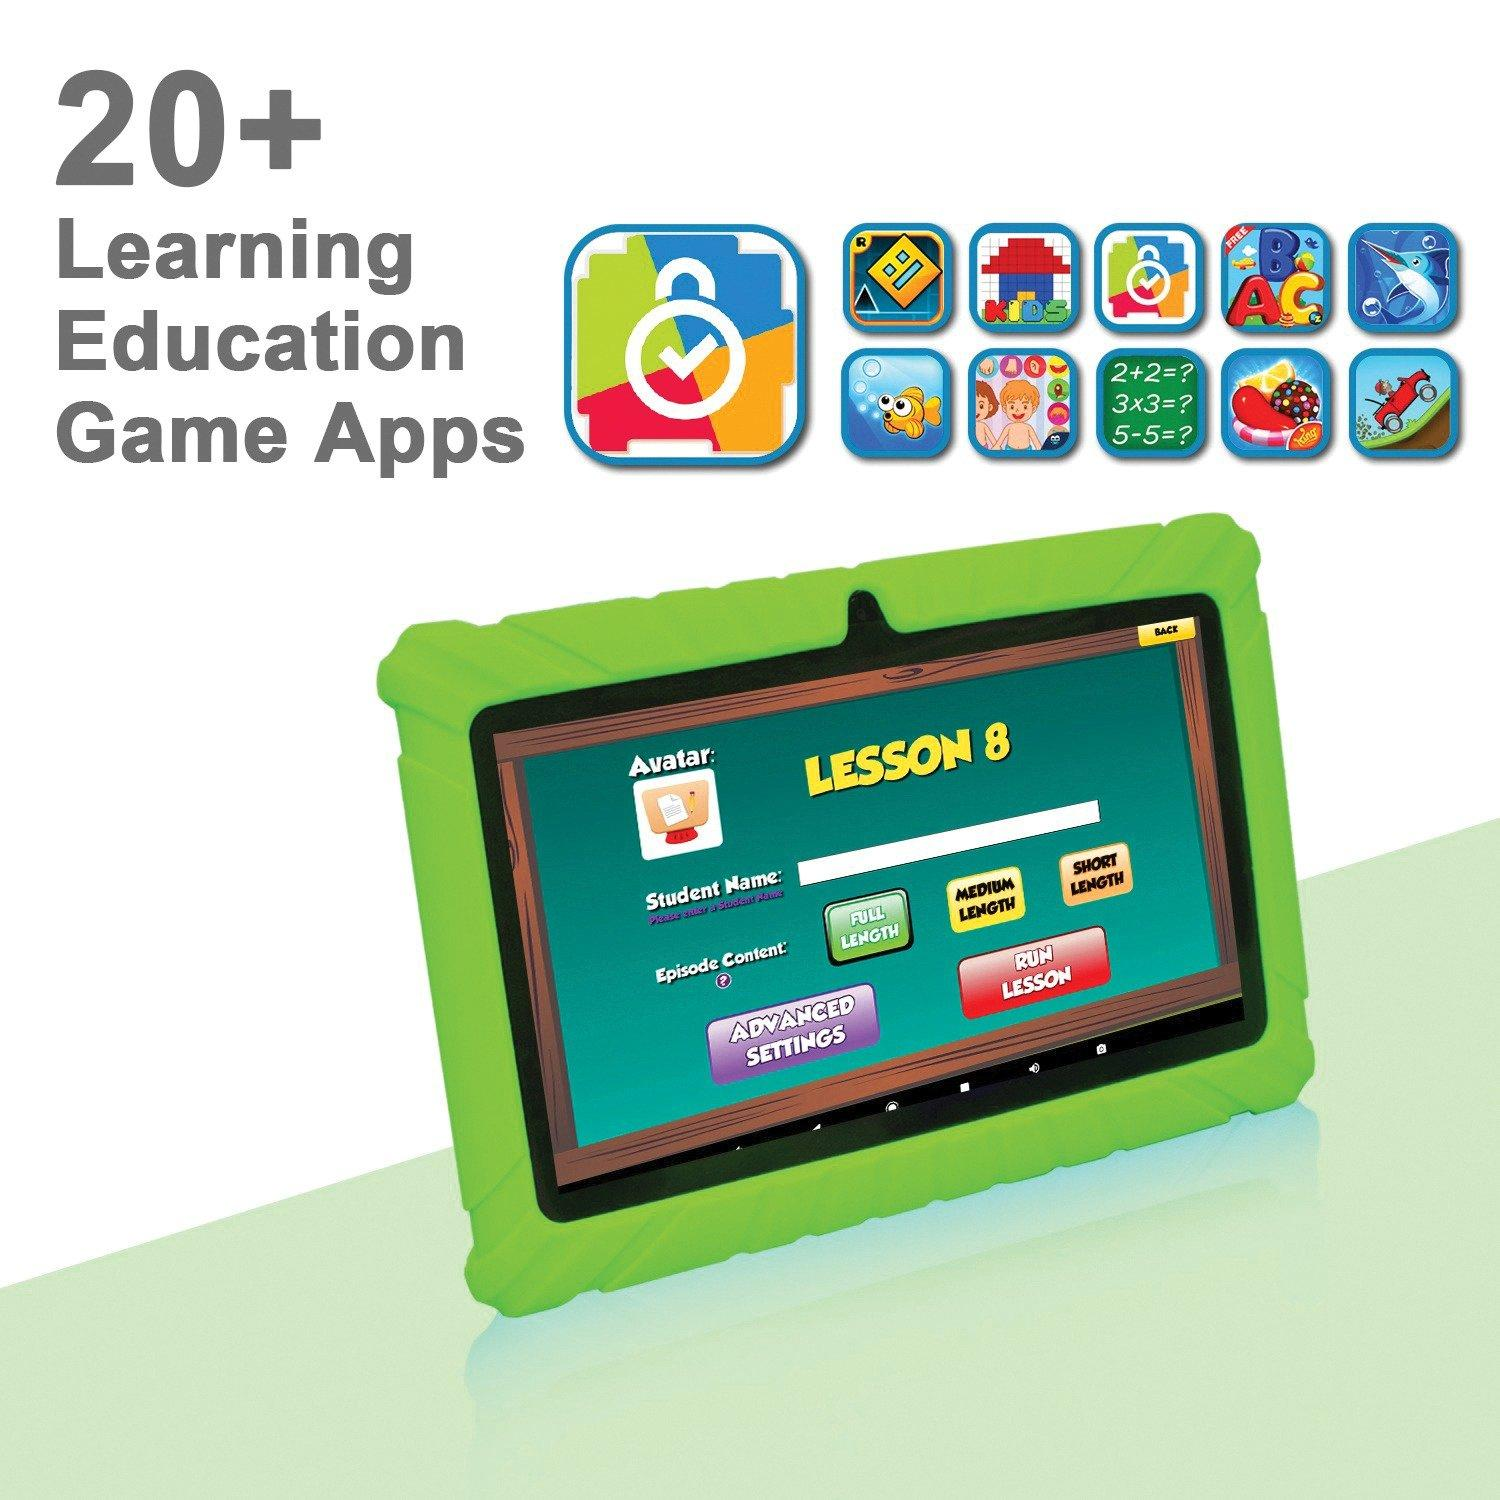 Kids 16 GB Green Tablet 7 in | Game Stop